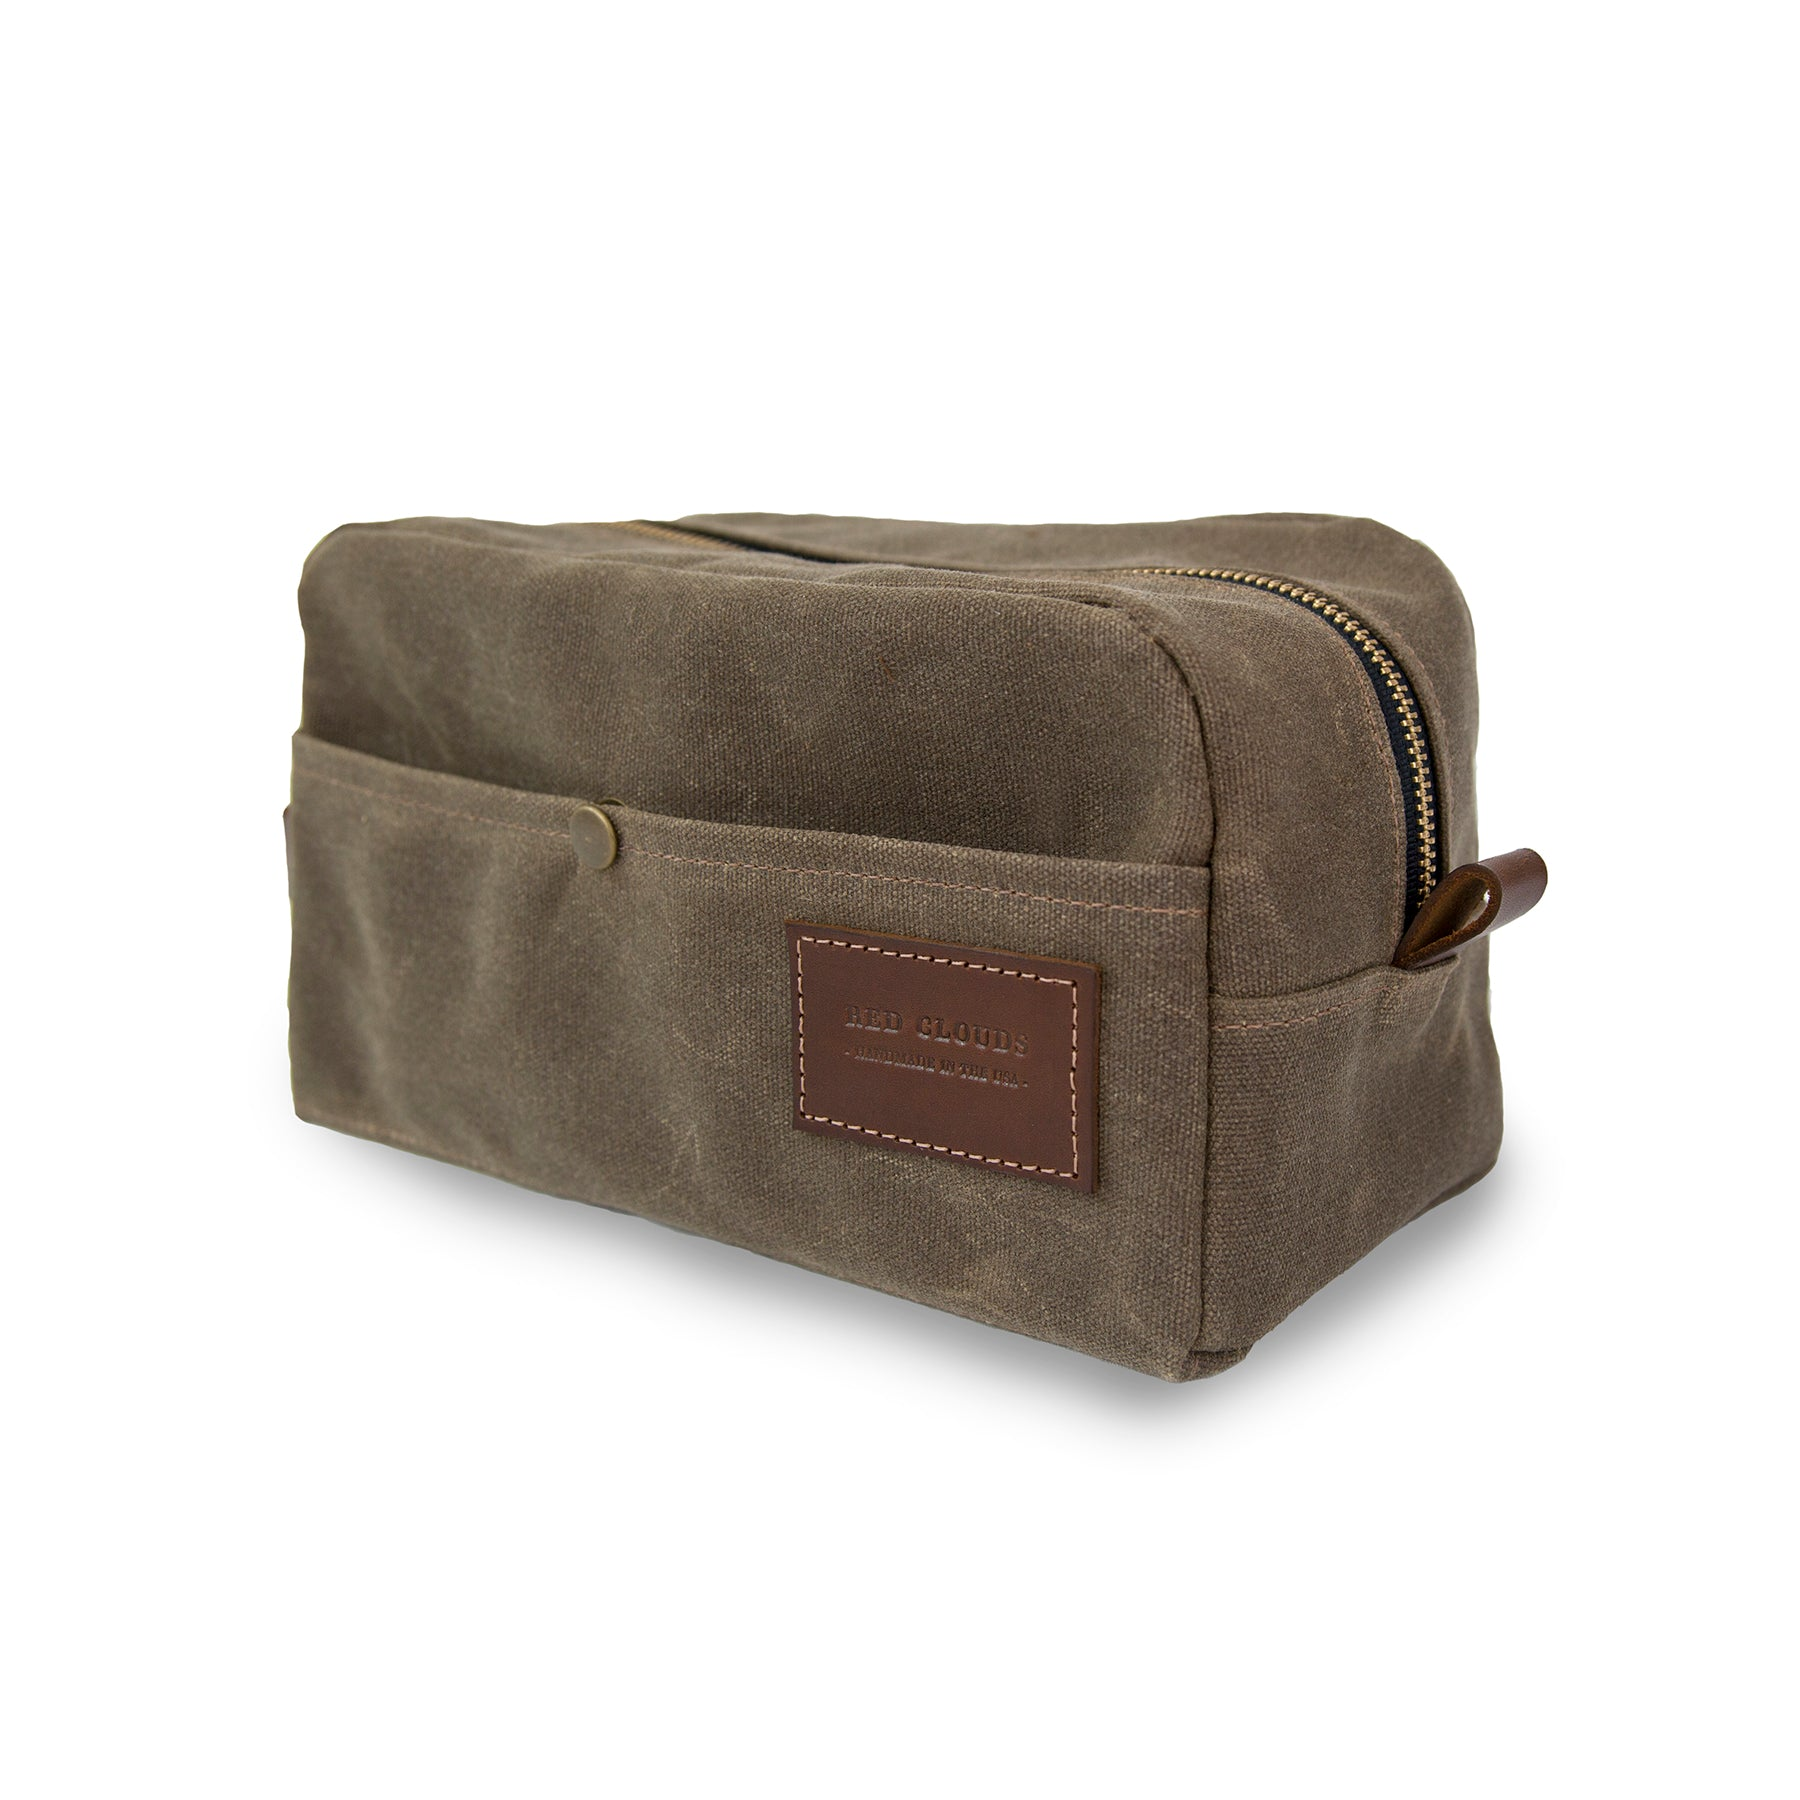 dopp kit, waxed canvas dopp kit, leather dopp kit, travel bag, toiletry bag, travel kit, made in usa, handcrafted, custom bag, portland, made in america, handmade, portland craft, best dopp kit